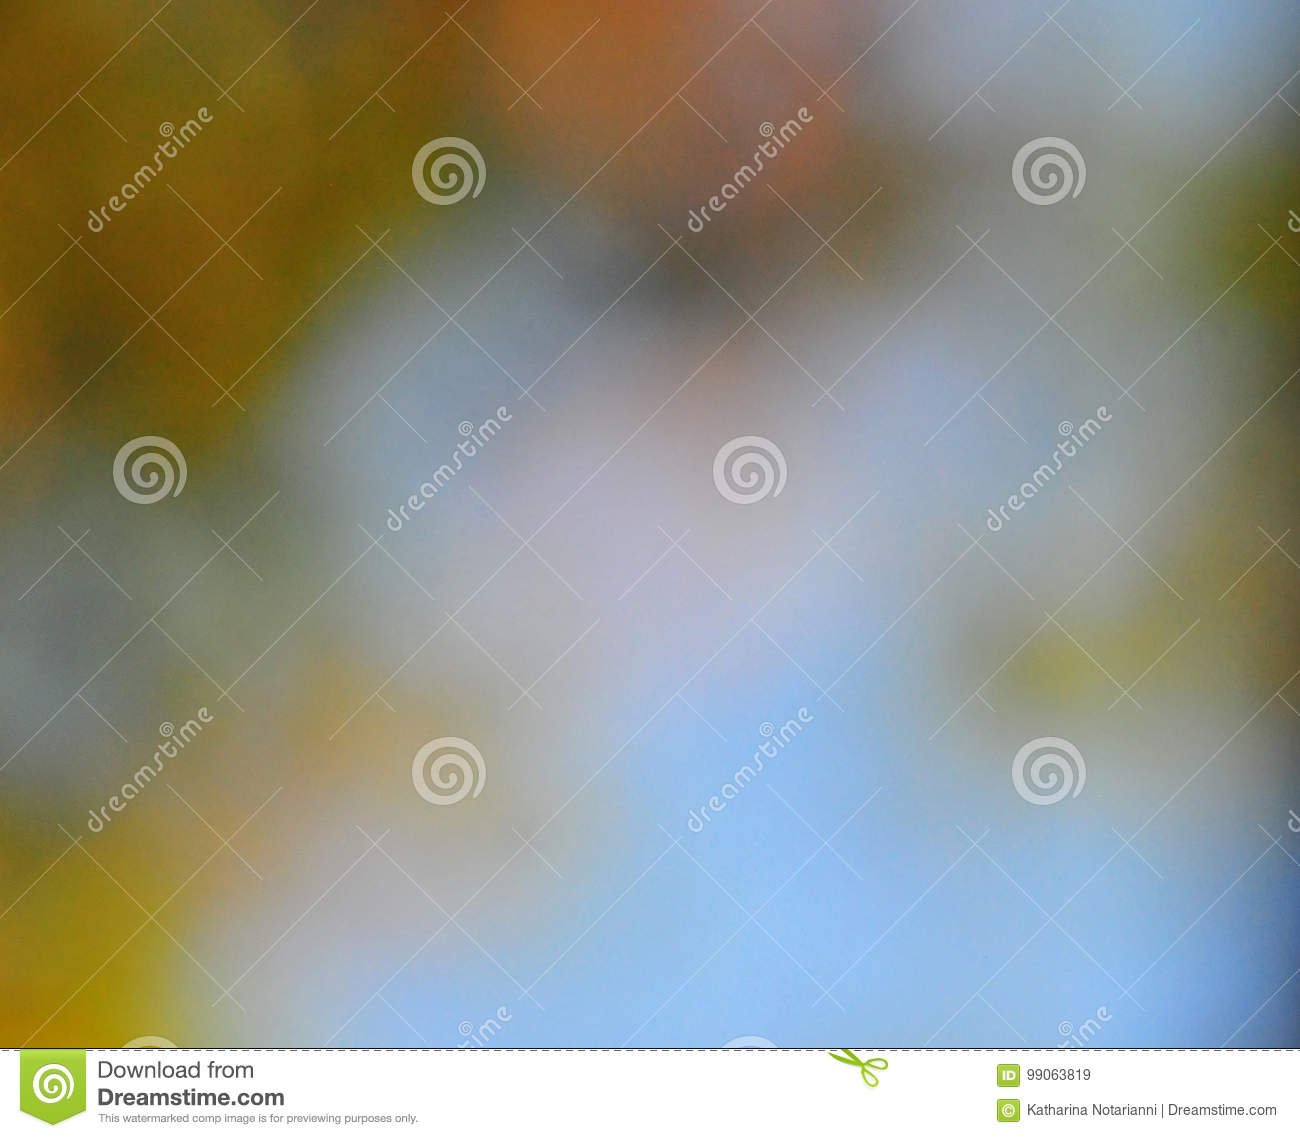 Abstract Mood Background in Brown Green and Blue